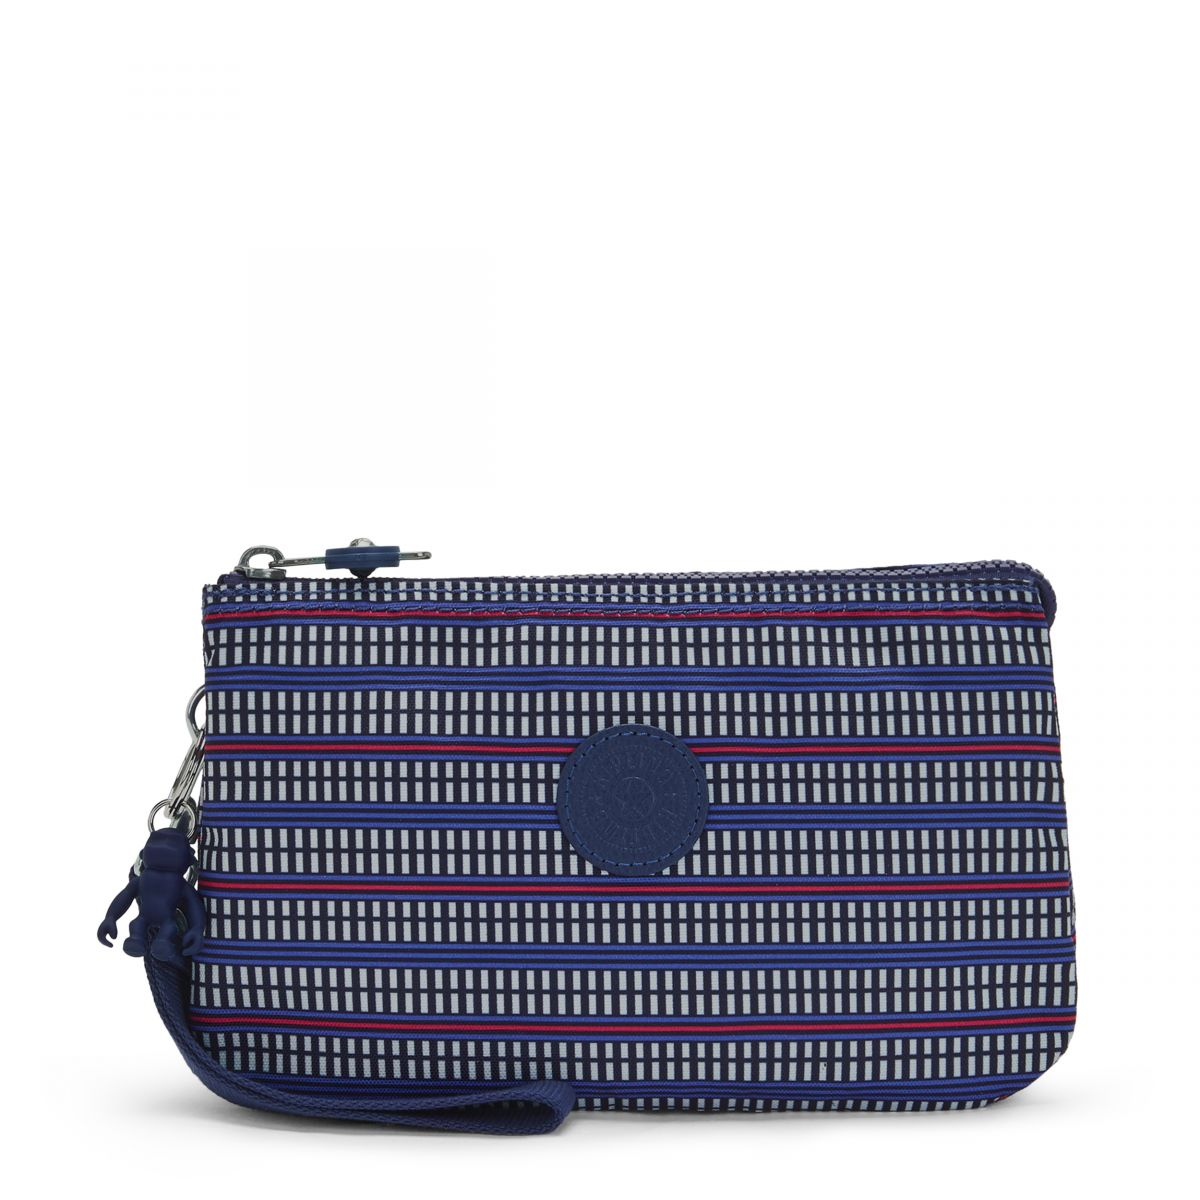 CREATIVITY XL ACCESSORIES by Kipling - Front view